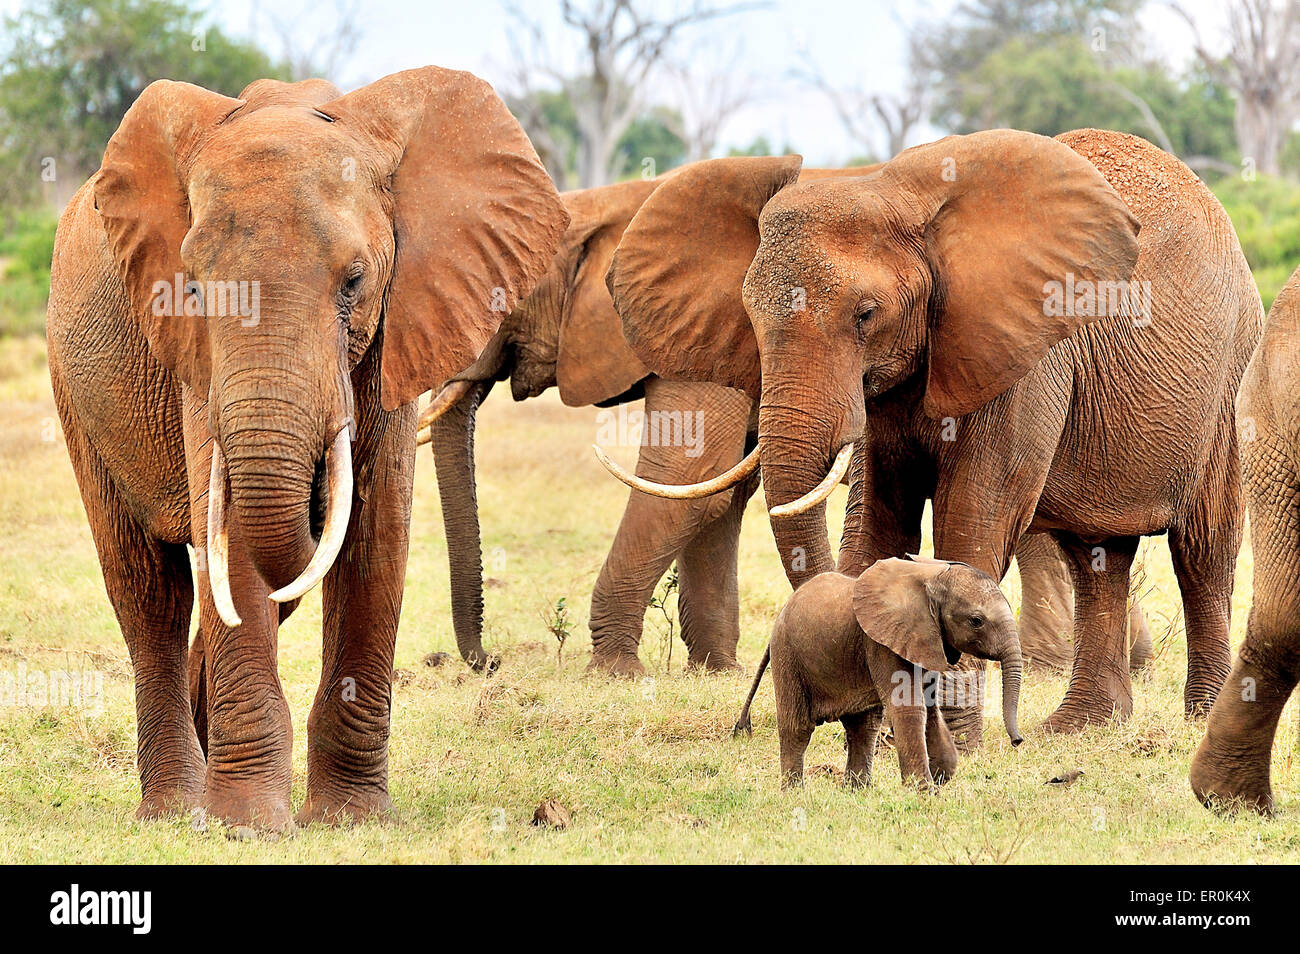 Baby elephant watching a bird between its family - Stock Image